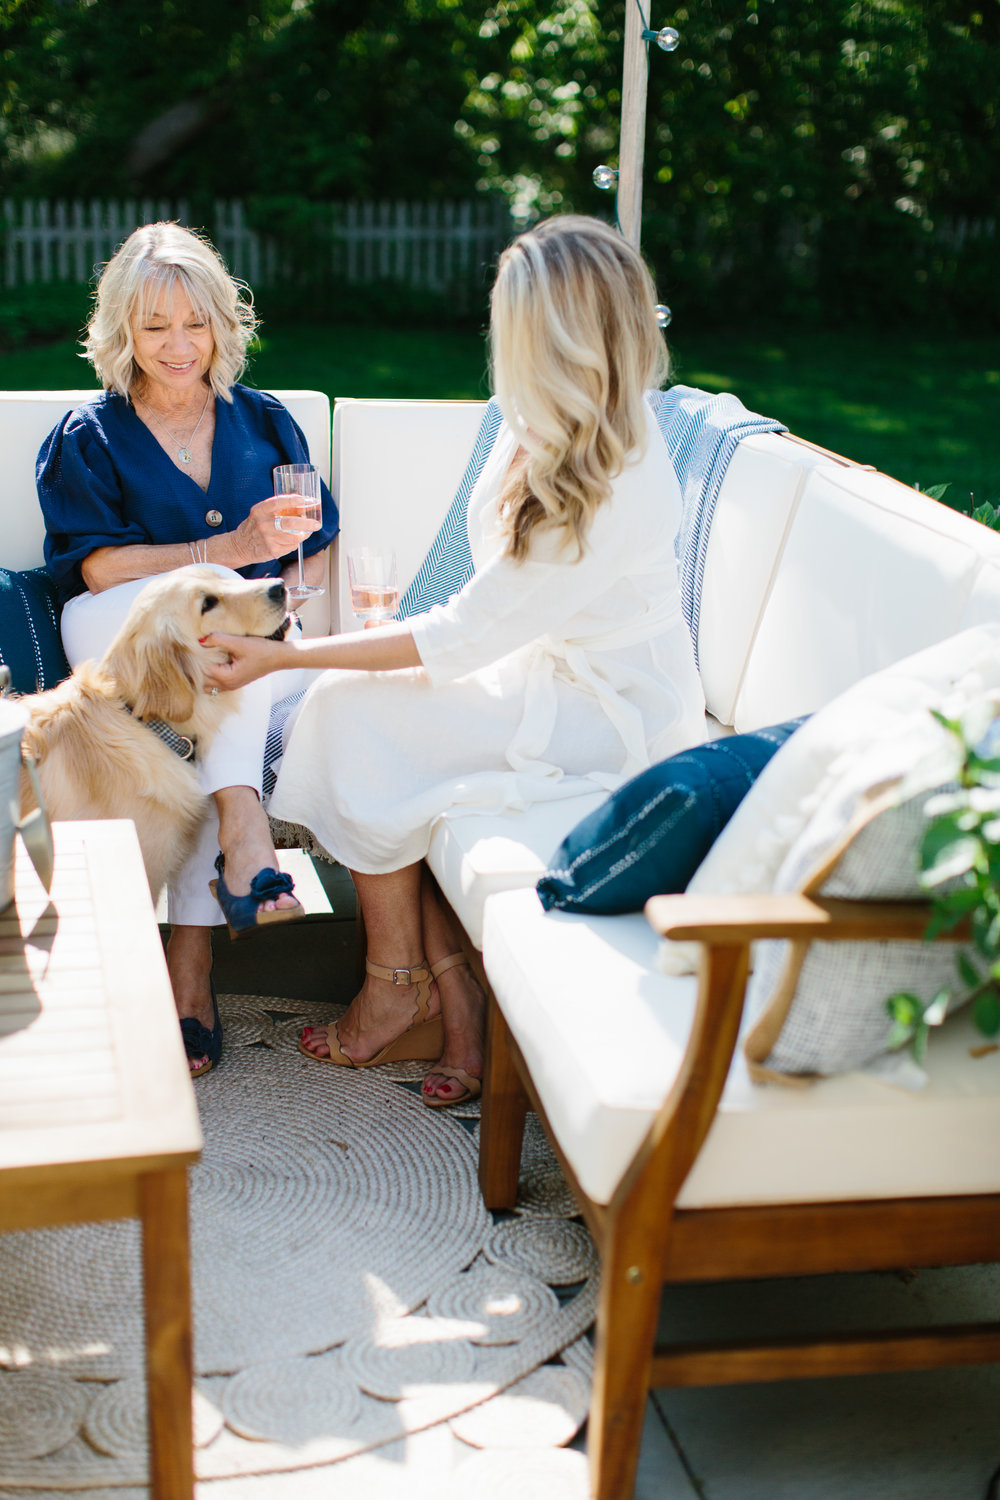 Outdoor Summer Entertaining Decor on a Budget Joss & Main Abby Capalbo | Photography: Erin McGinn